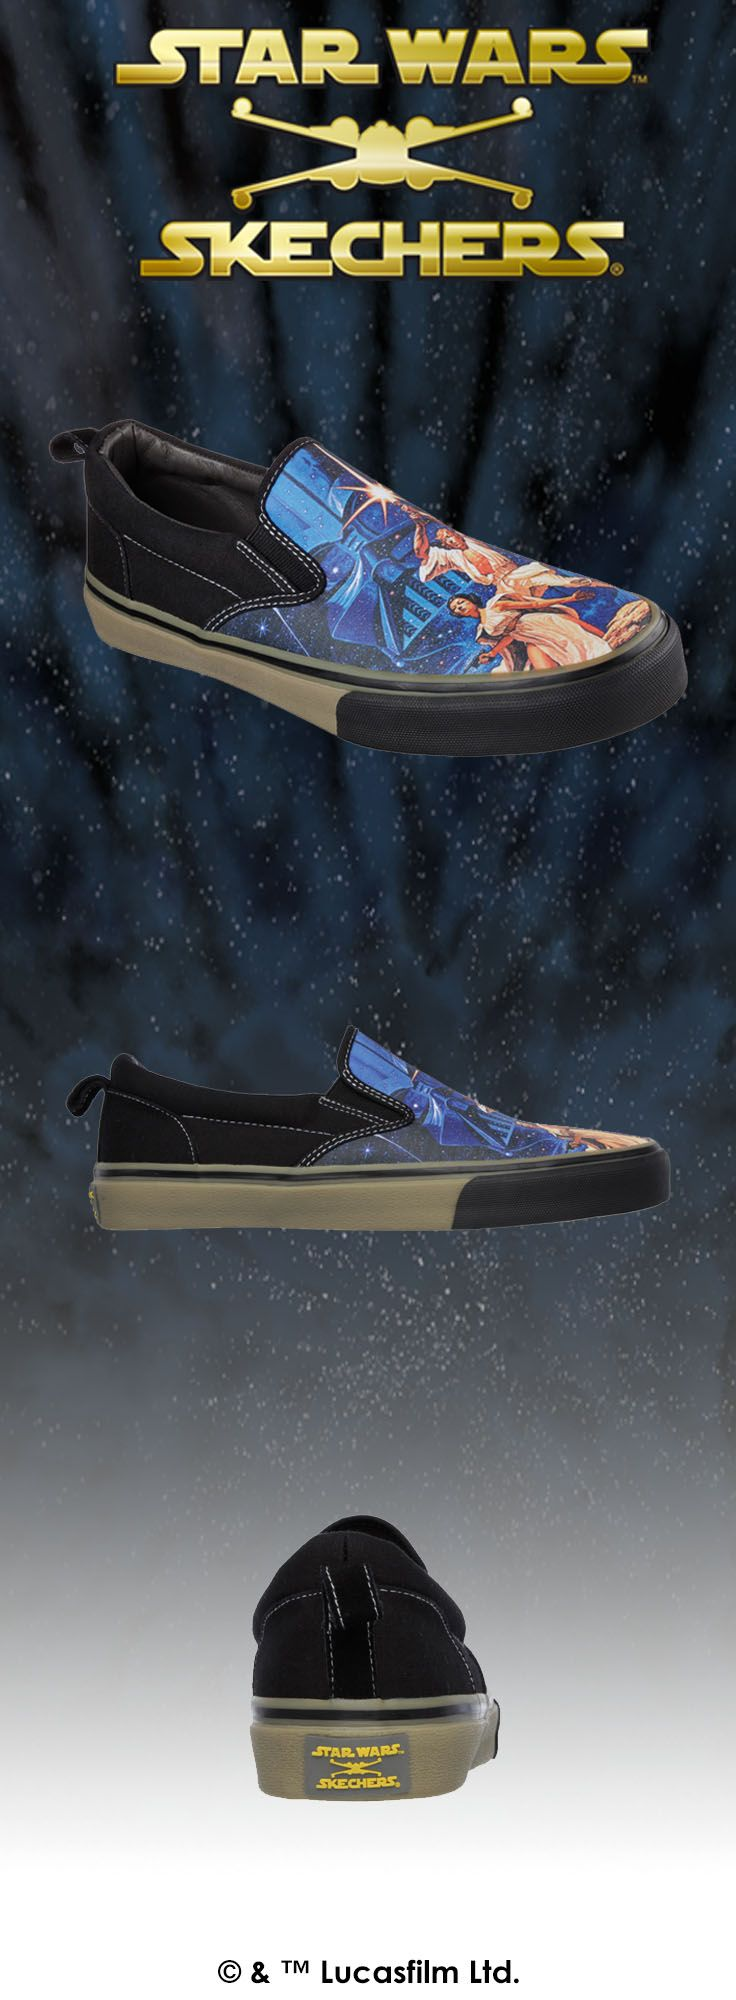 Celebrate the original that started it all with the STAR WARS: A NEW HOPE™ canvas slip-on for adults and kids.   http://spr.ly/6004BuHbA